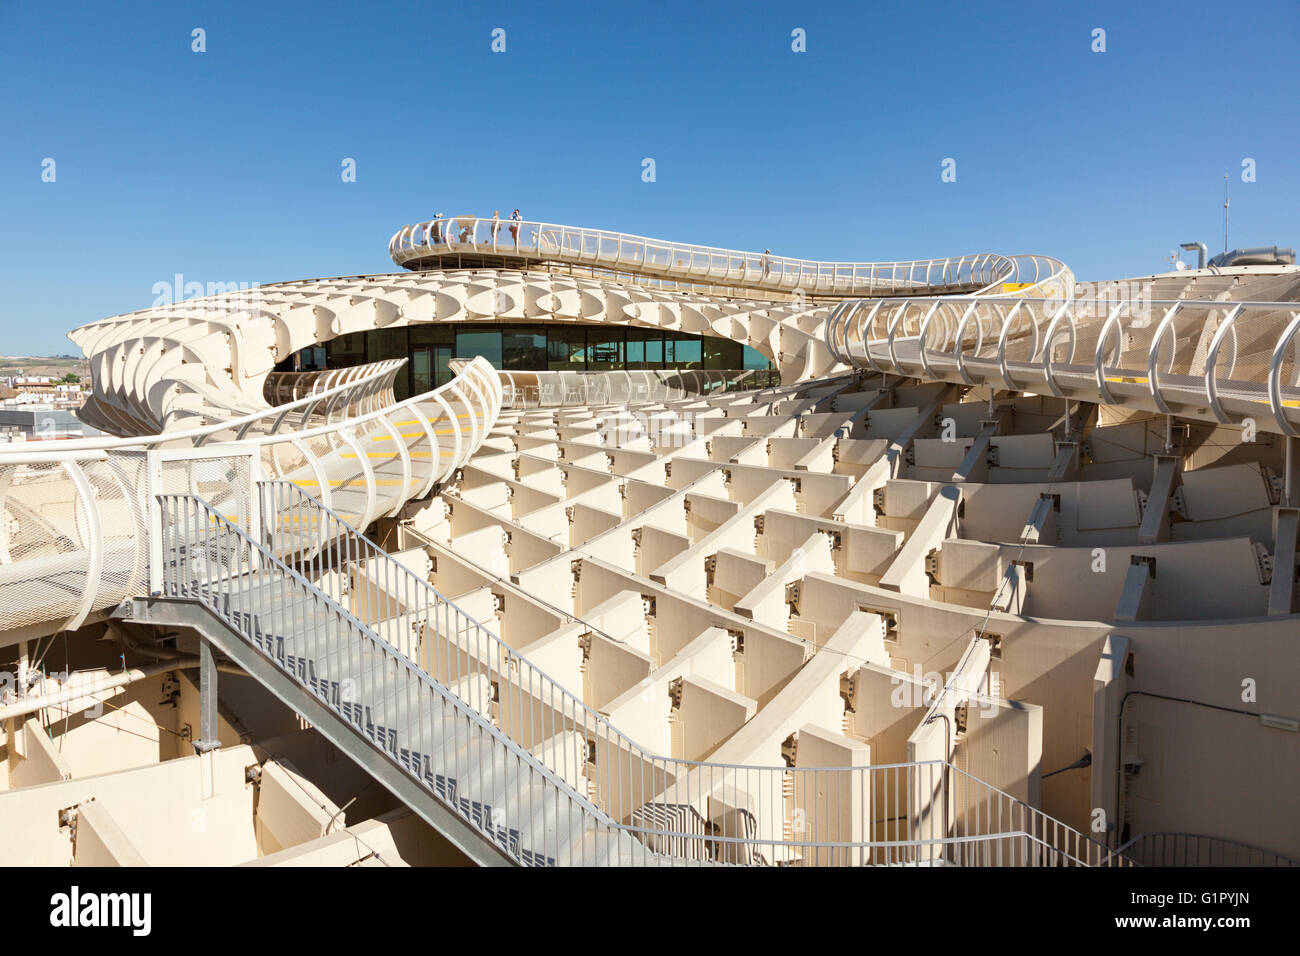 Tourists on the lookout on top of Espacio Metropol Parasol building, a wooden structure designed by architect Jürgen - Stock Image